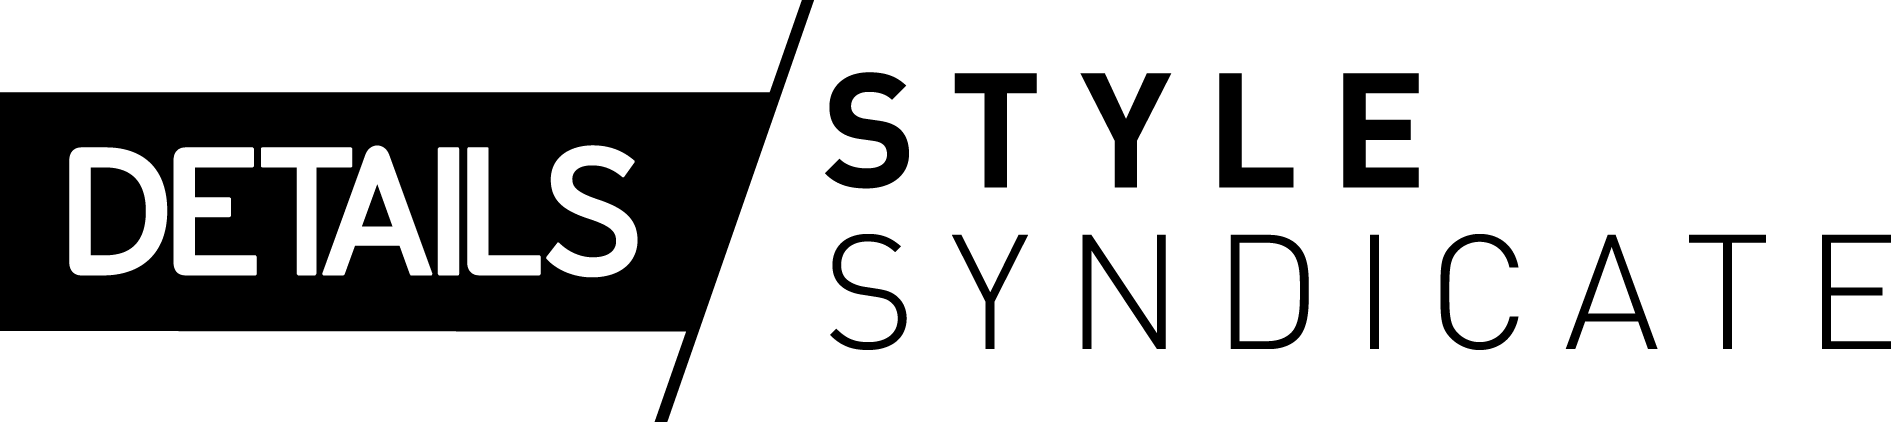 Details Style Syndicate Men S Fashion Grooming And Design